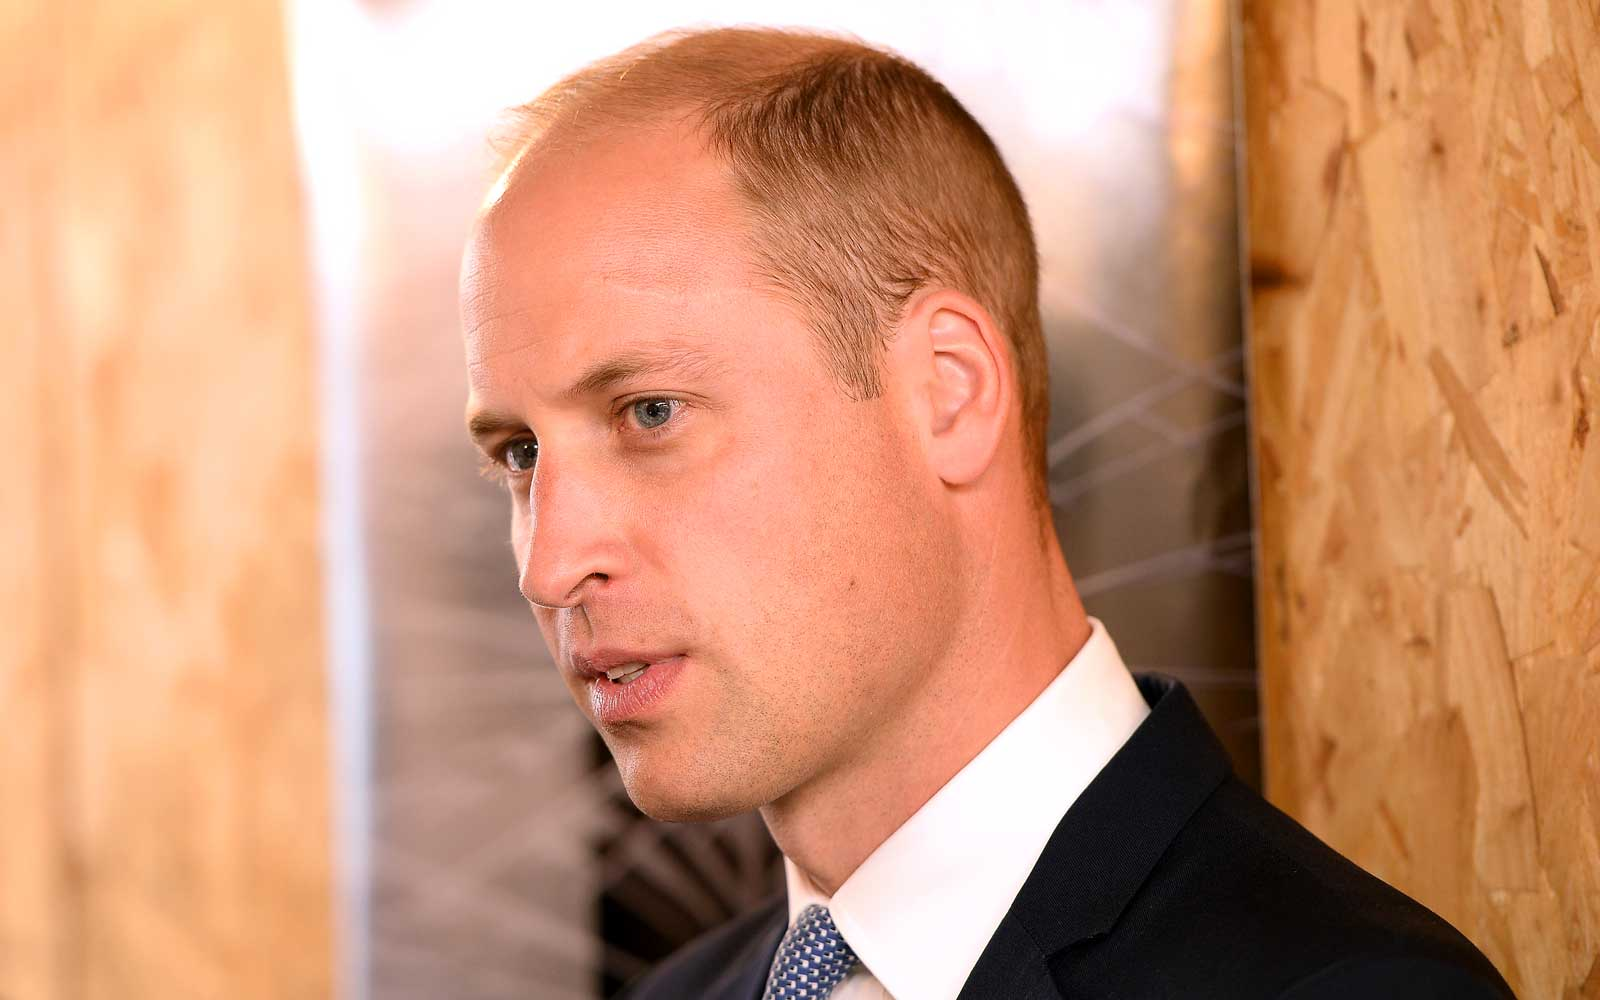 Prince William Is Going to Africa This Month — Here's His Itinerary